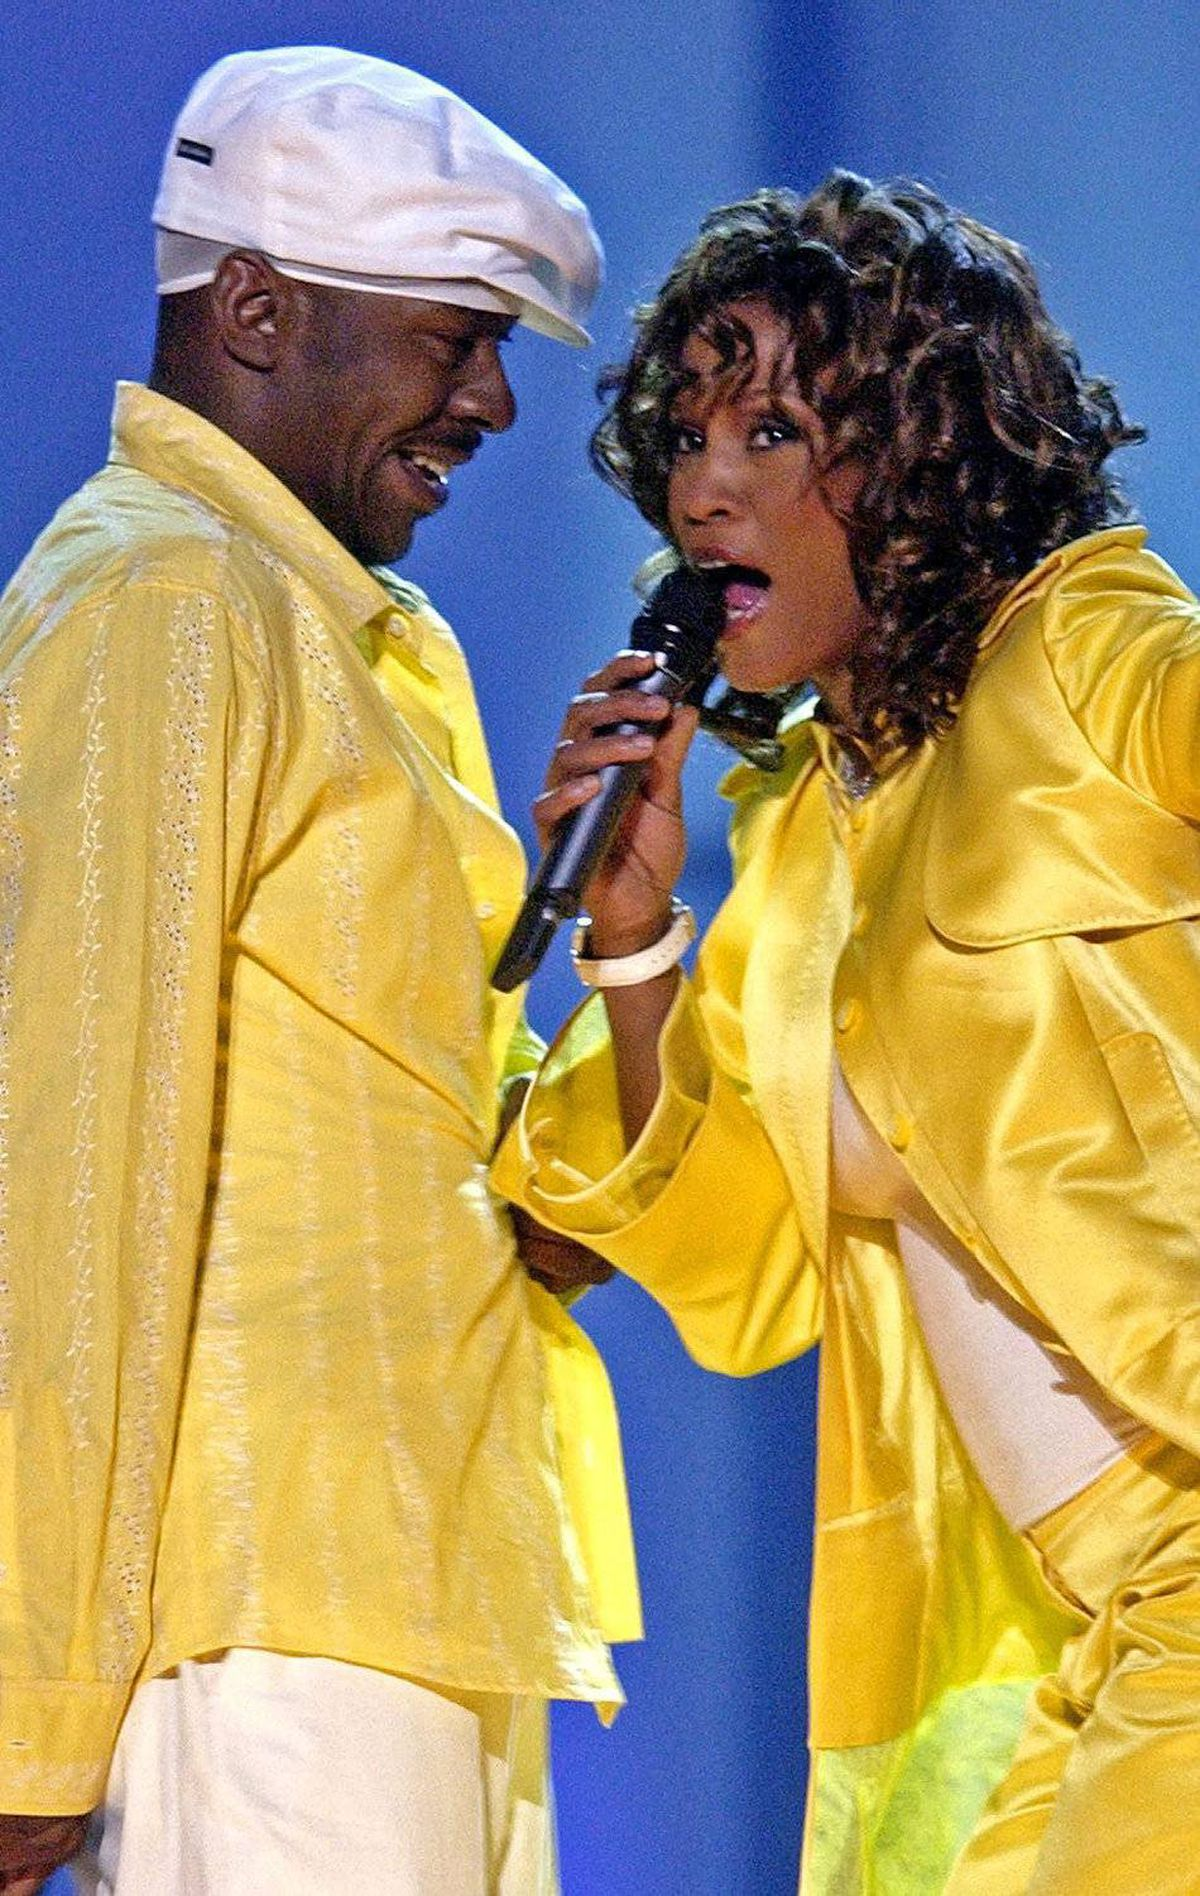 Ms. Houston and her then-husband, musician Bobby Brown, perform during the VH1 Divas duet show in Las Vegas in May, 2003. The two divorced four years later after a tumultuous marriage that included charges of domestic abuse against Mr. Brown in 1993.